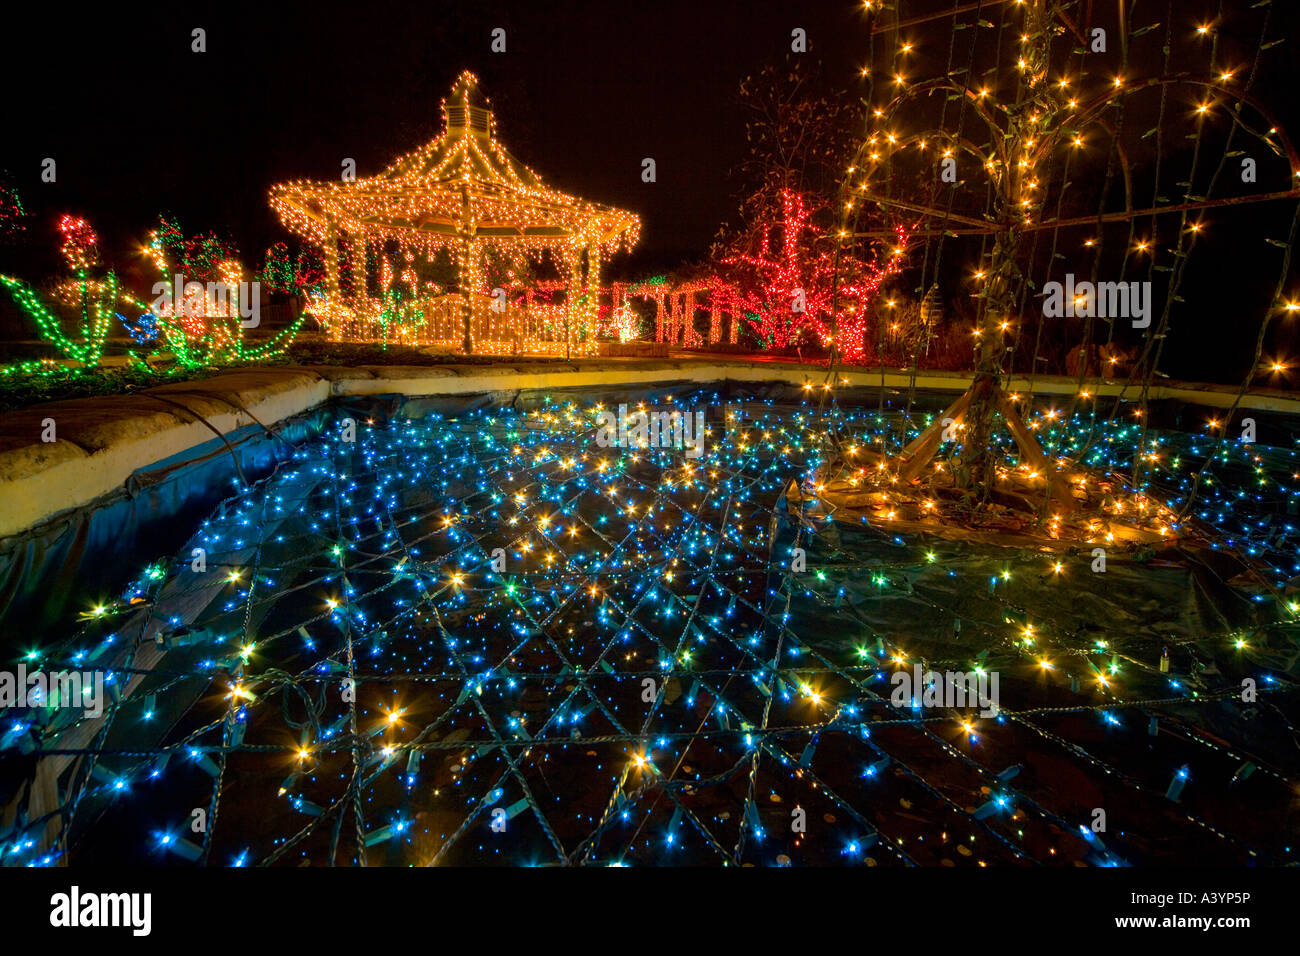 brookside gardens lights display in wheaton md